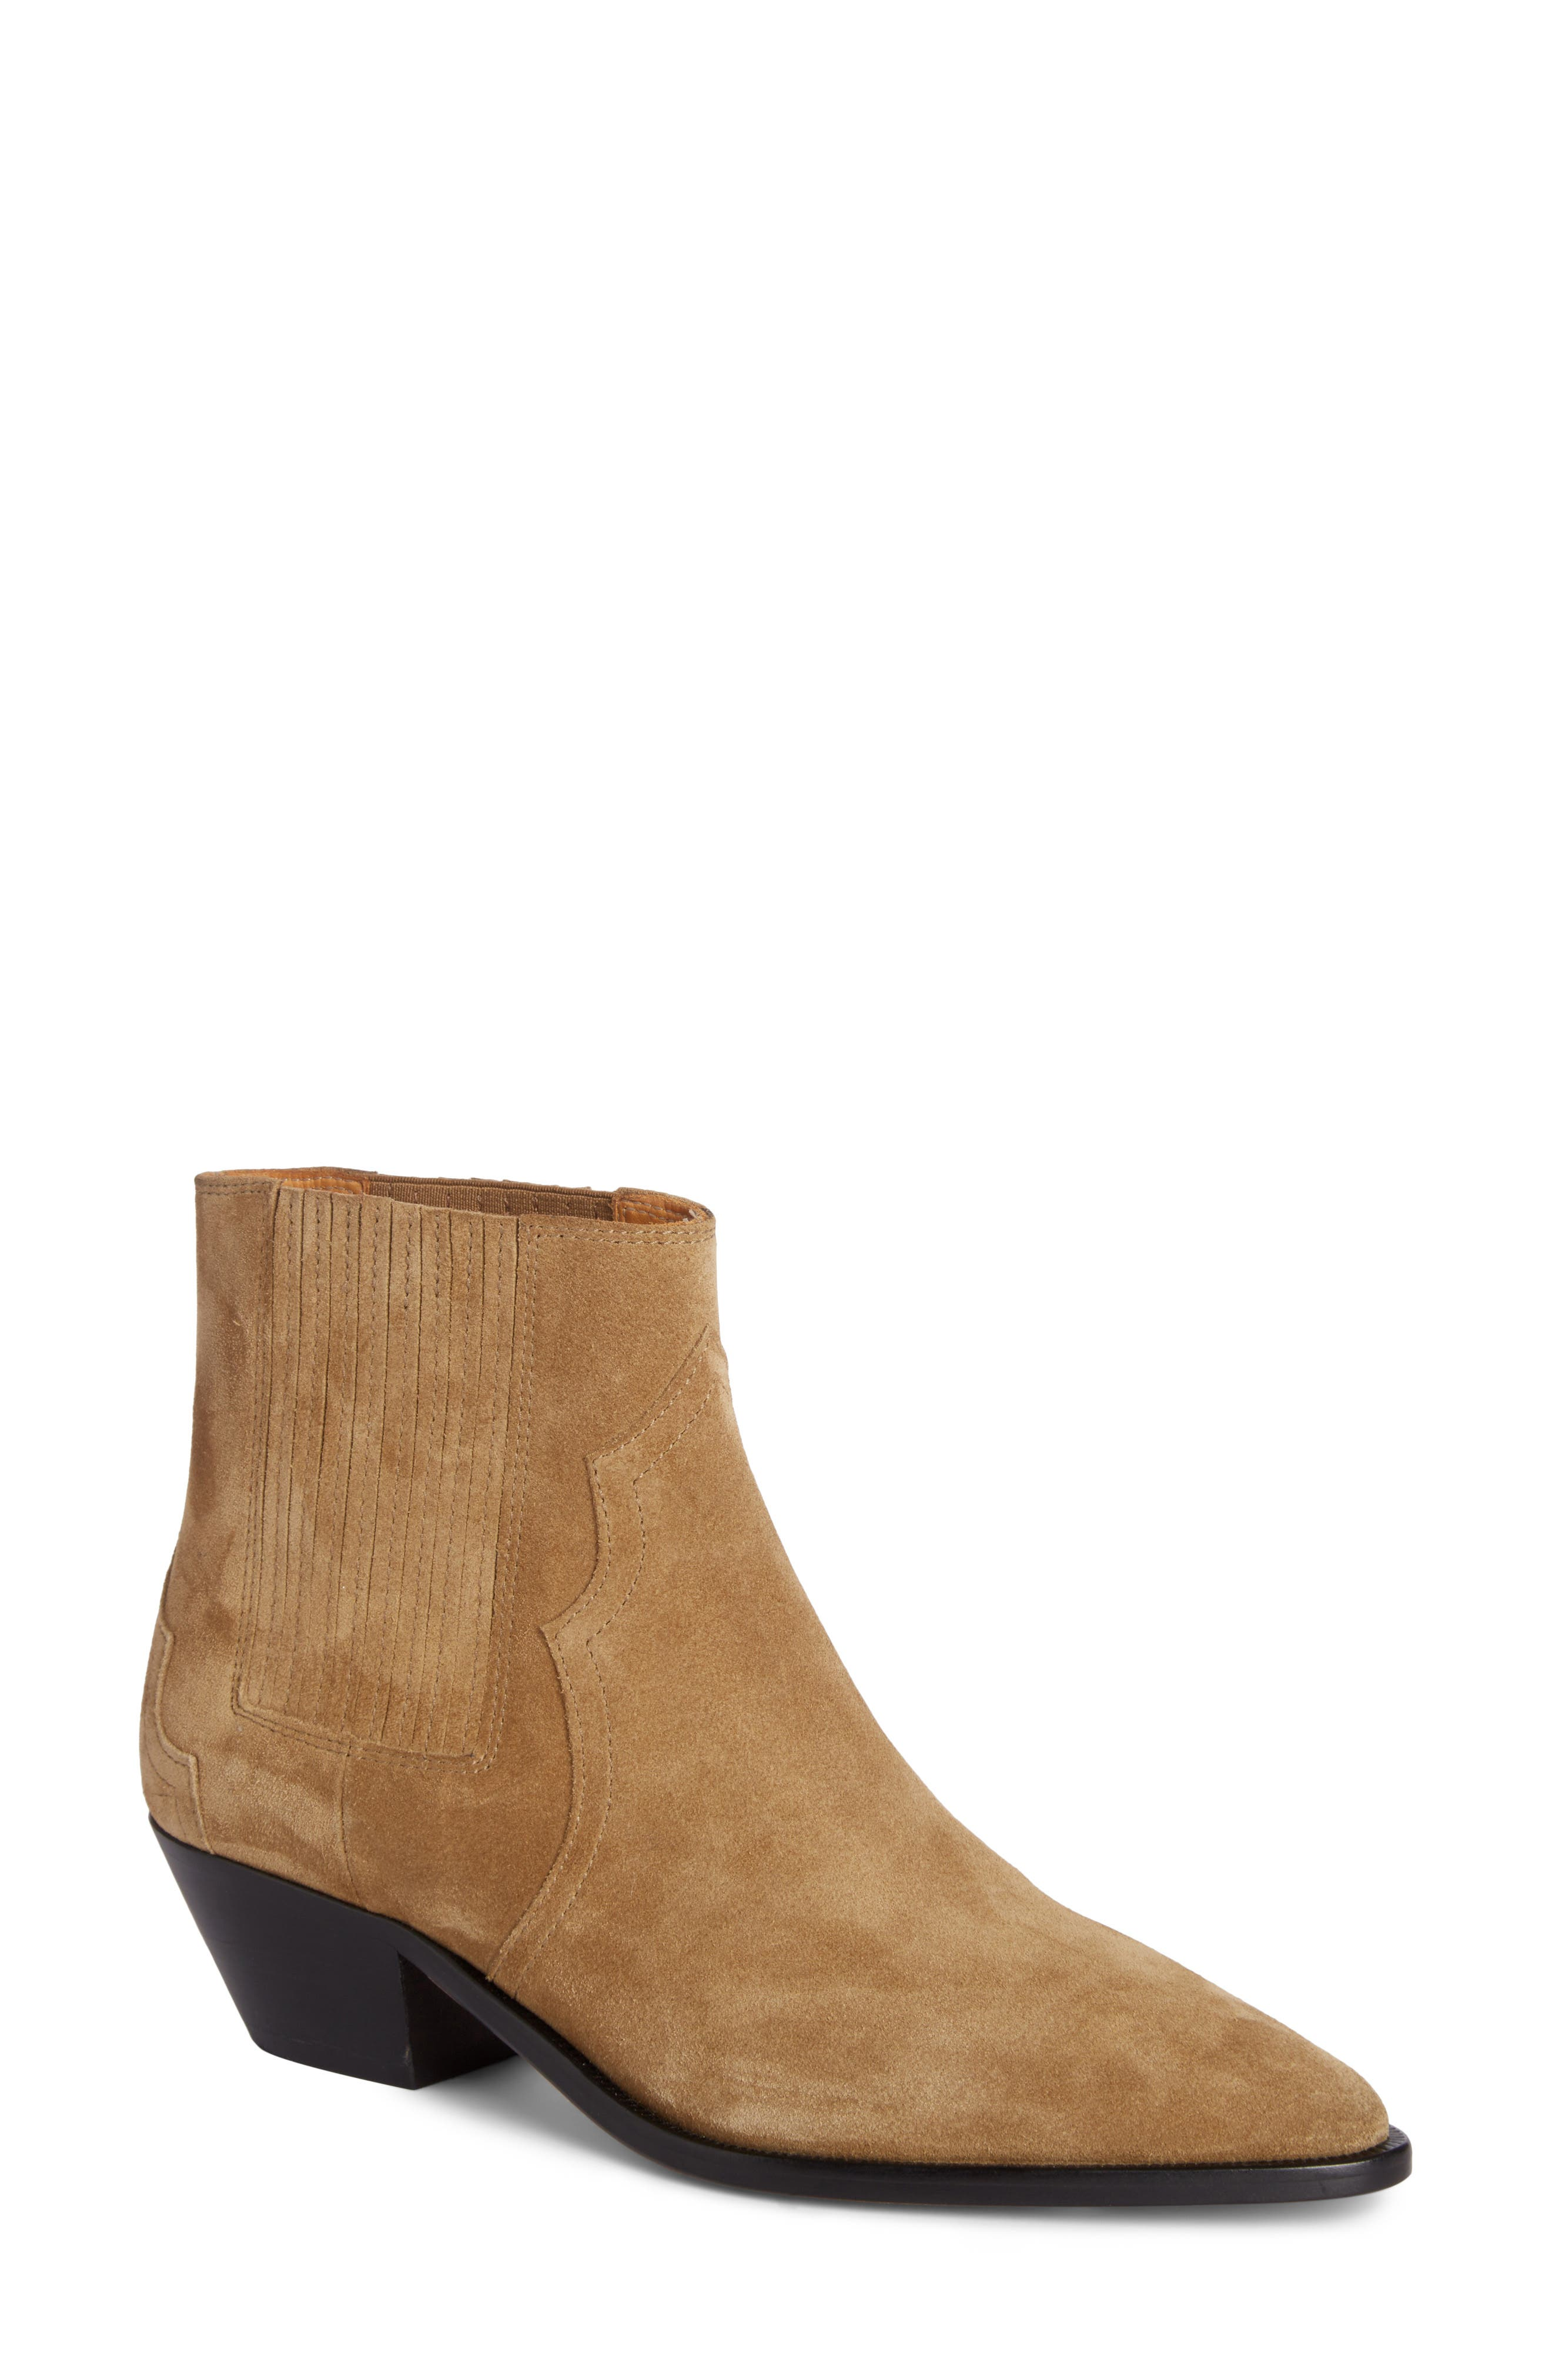 Alternate Image 1 Selected - Isabel Marant Derlyn Pointy Toe Boot (Women)